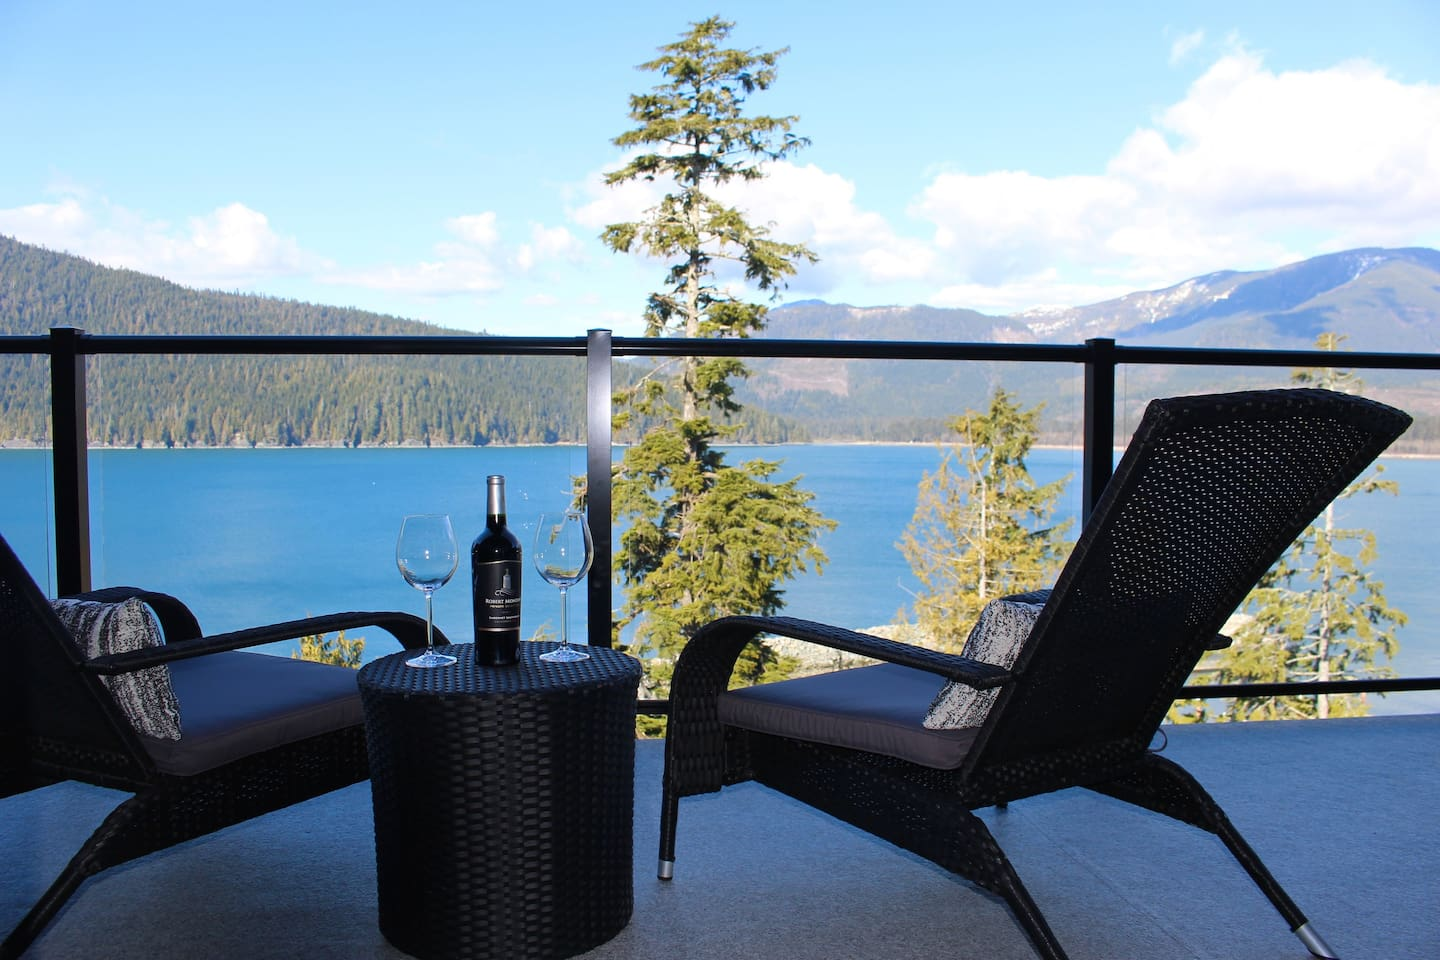 Relax with a glass of wine or your morning coffee while basking in the breathtaking views!